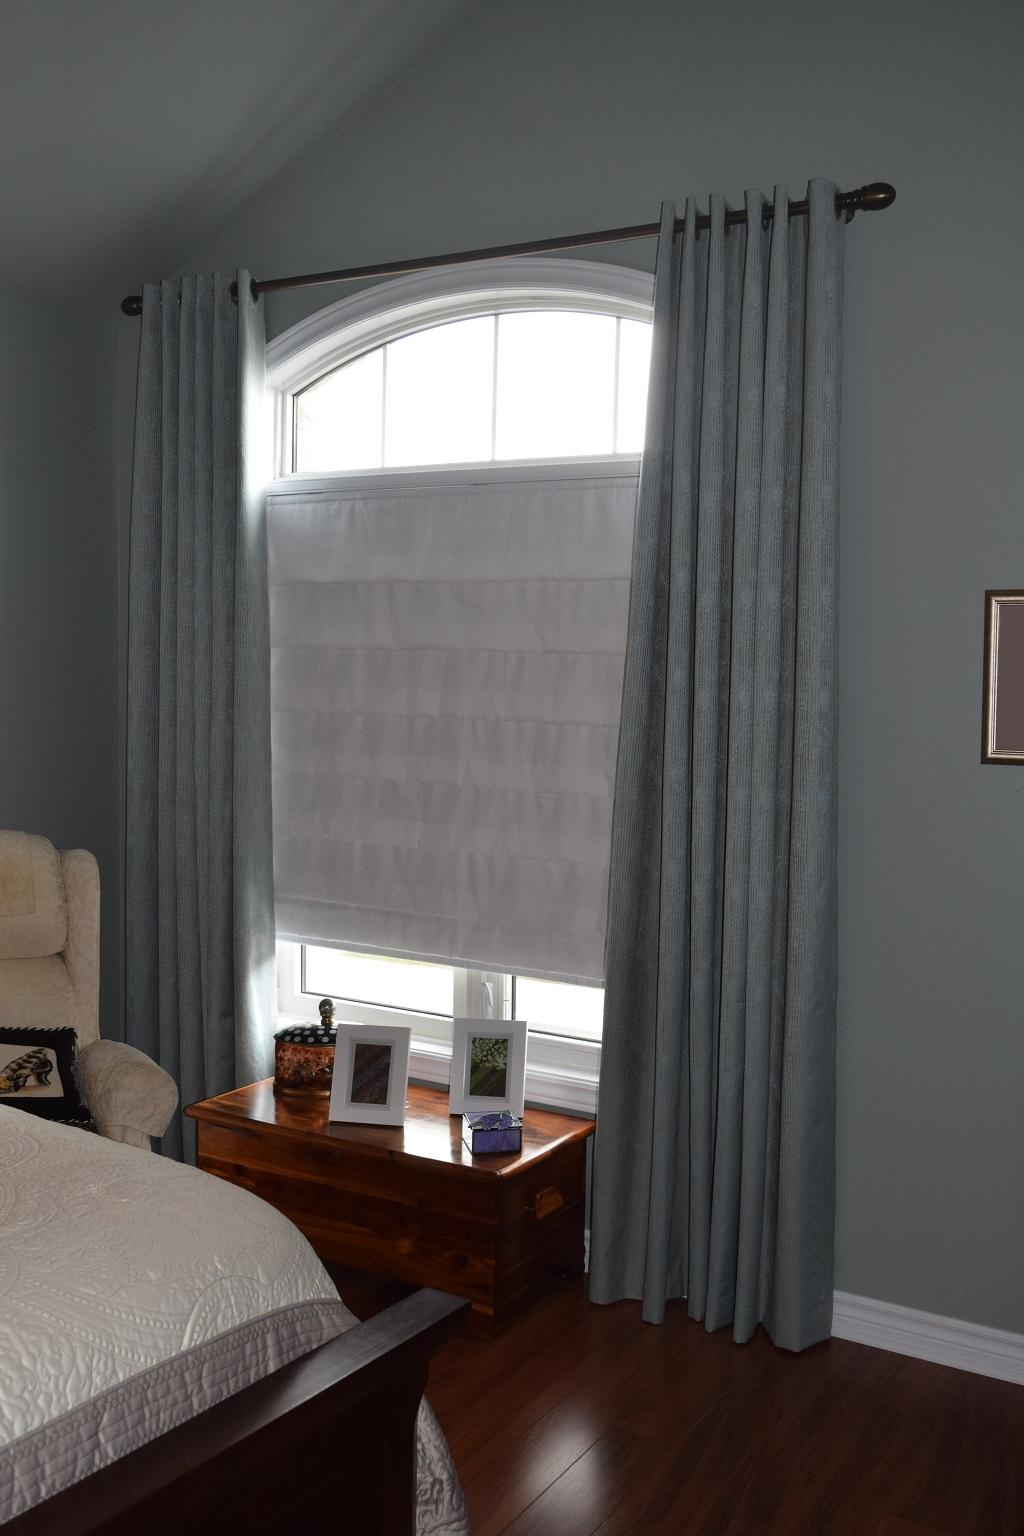 Budget Blinds à Waterloo: During the day the roman shade provides this Stratford customer with privacy and light control. At night the darkening Grommet Drapes can be drawn to prevent light from entering through the arch.